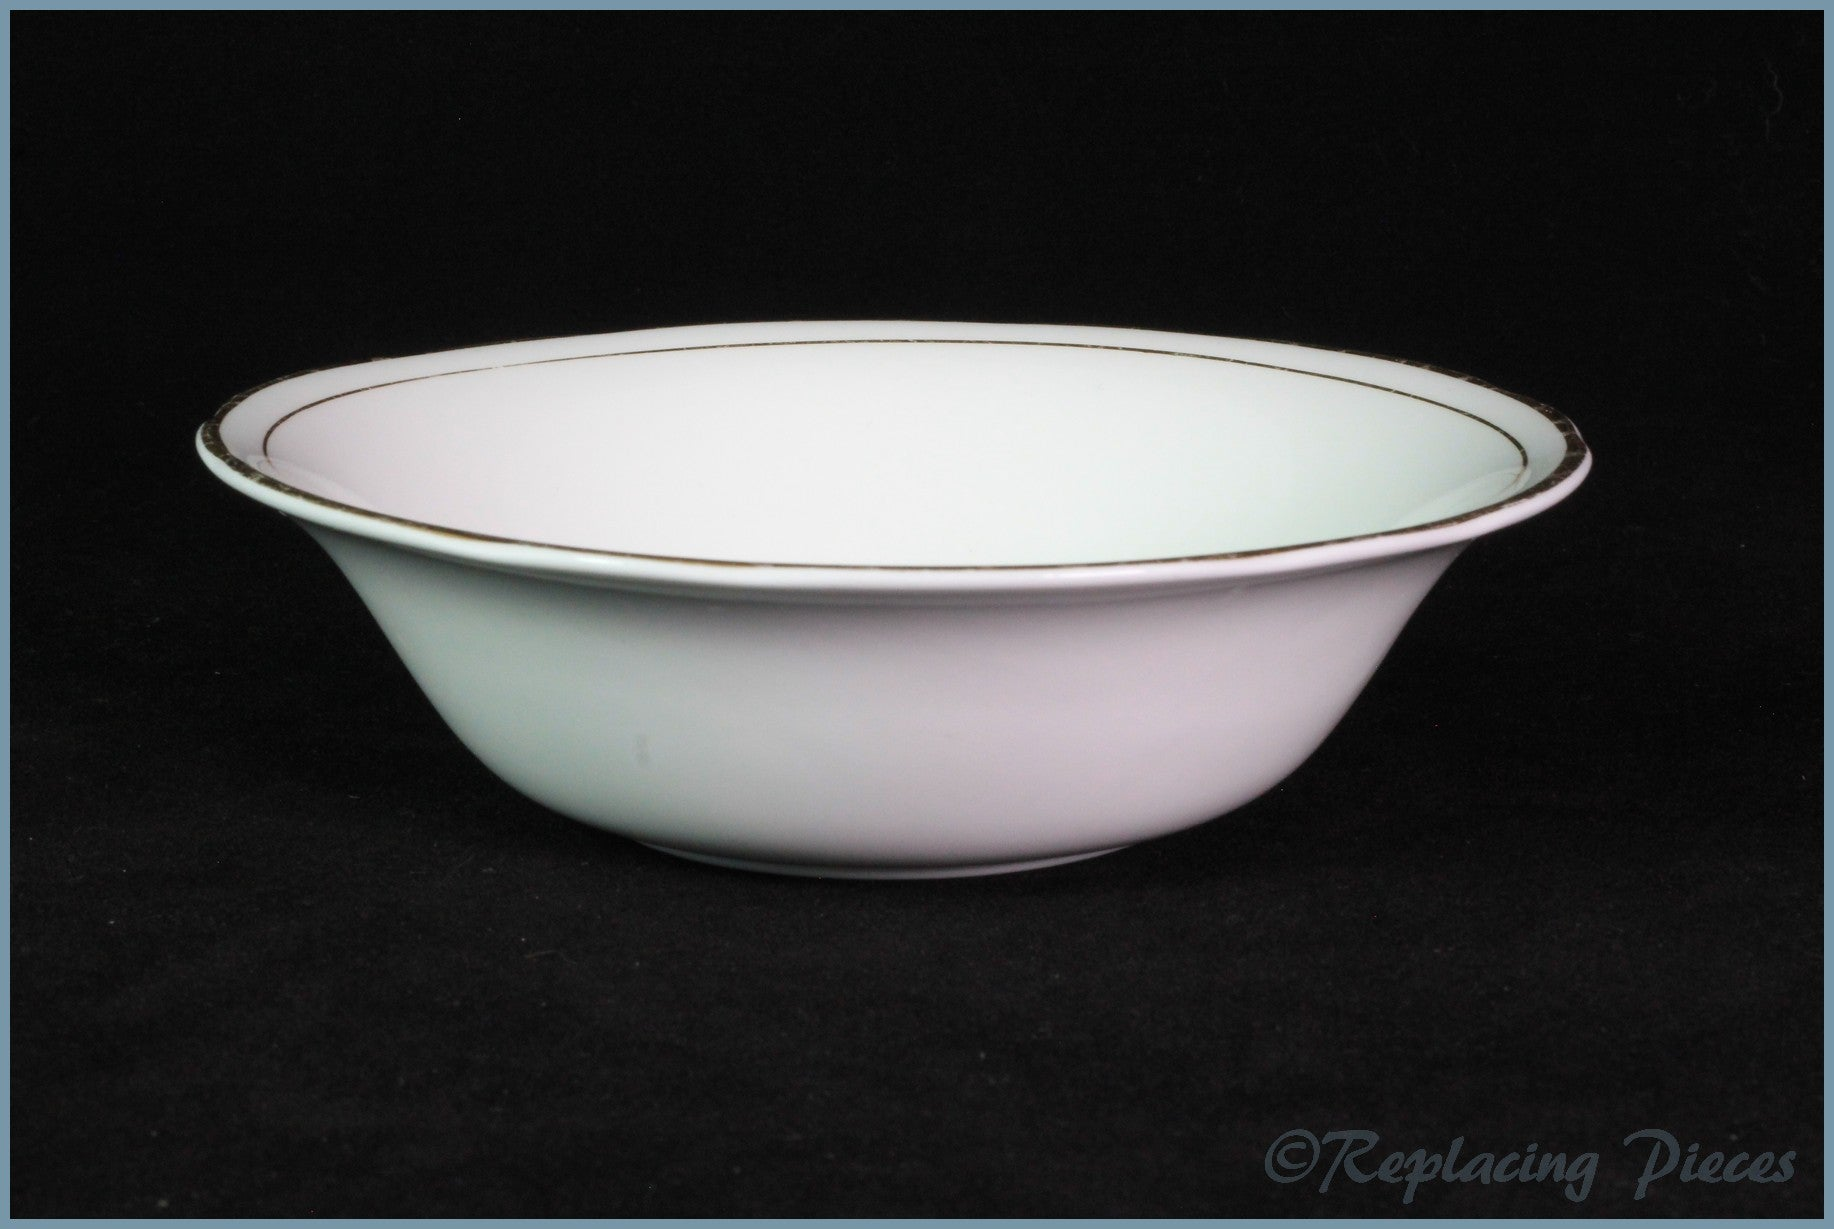 Duchess - Ascot - Cereal Bowl